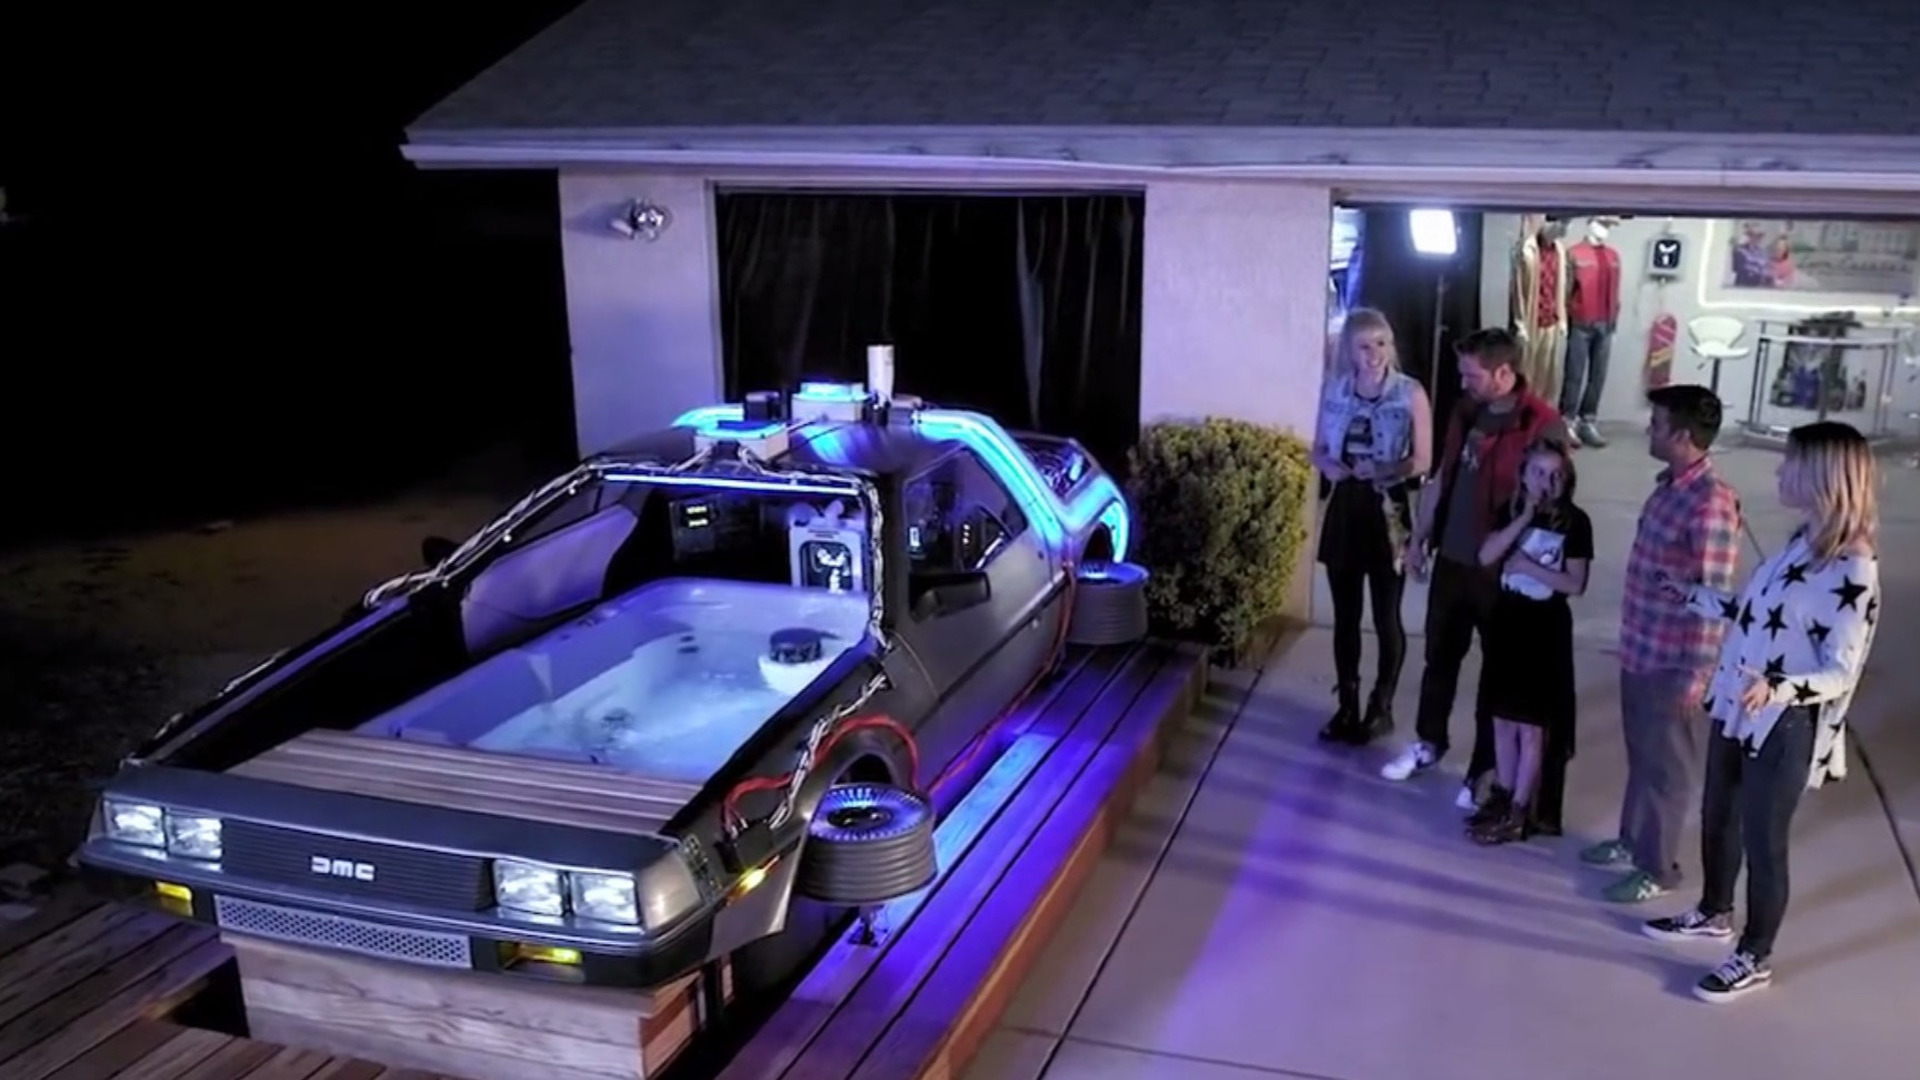 Car Toys Here's A Back To The Future Delorean Hot Tub, Because Why Not?